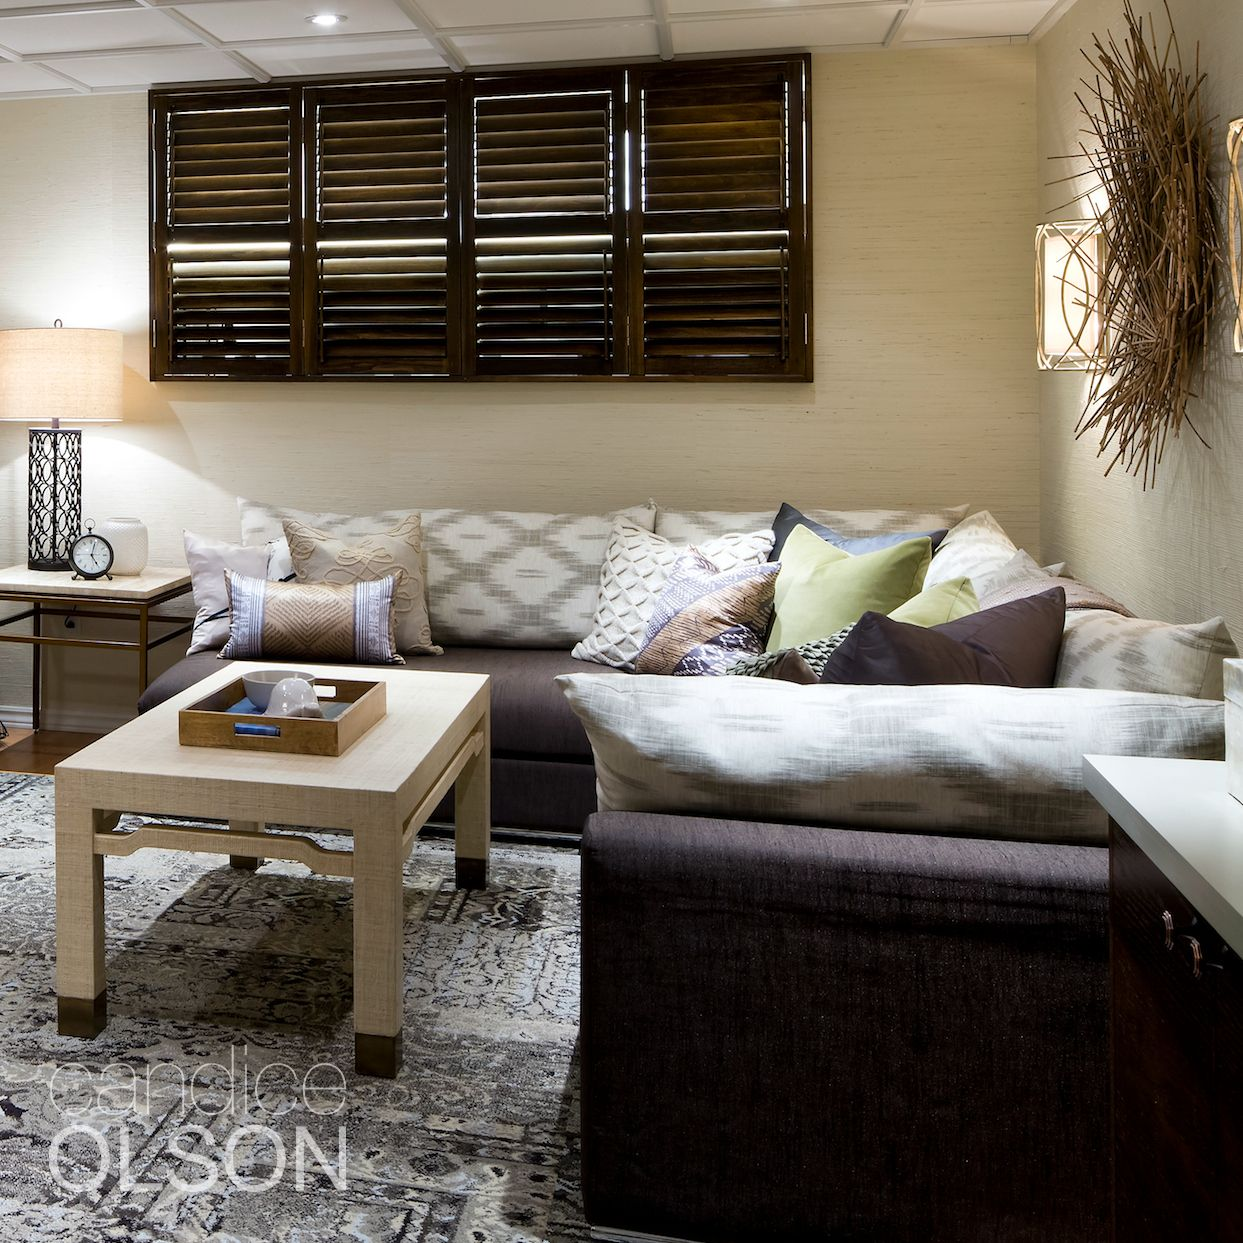 Candice Olson Basement Design: Does Your Basement Have Small Windows? You Are Not Alone